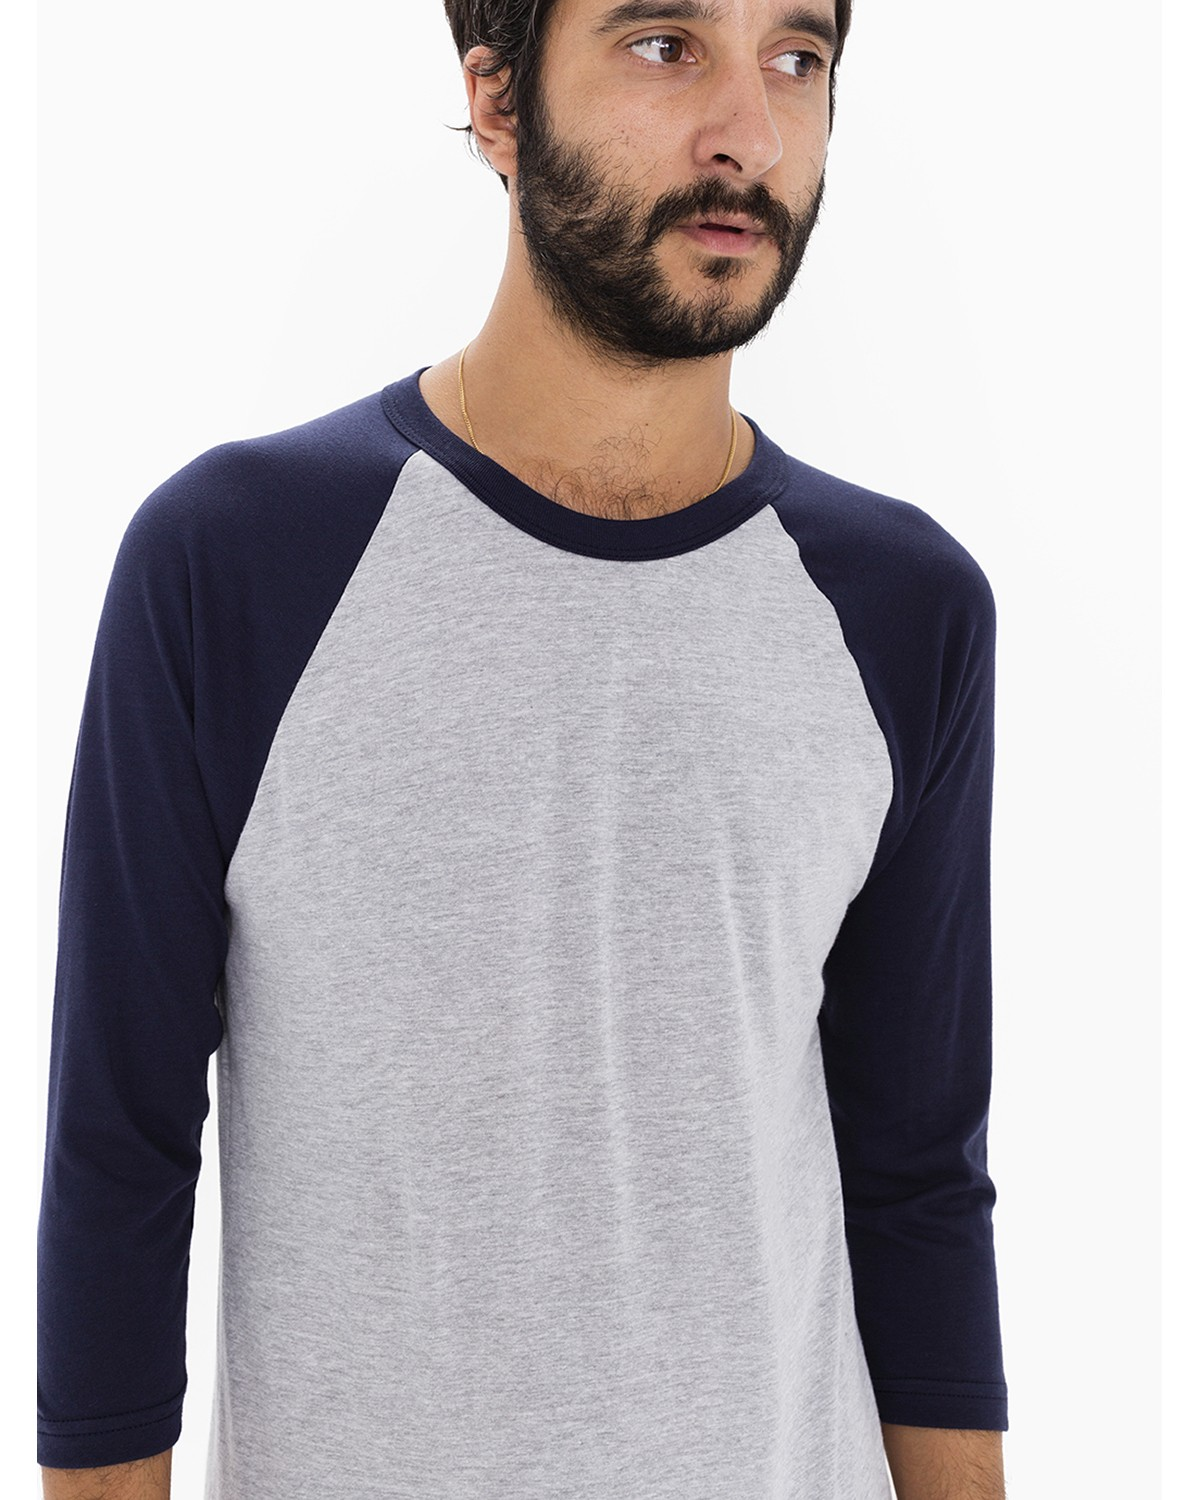 BB453W American Apparel HTHR GREY/NAVY